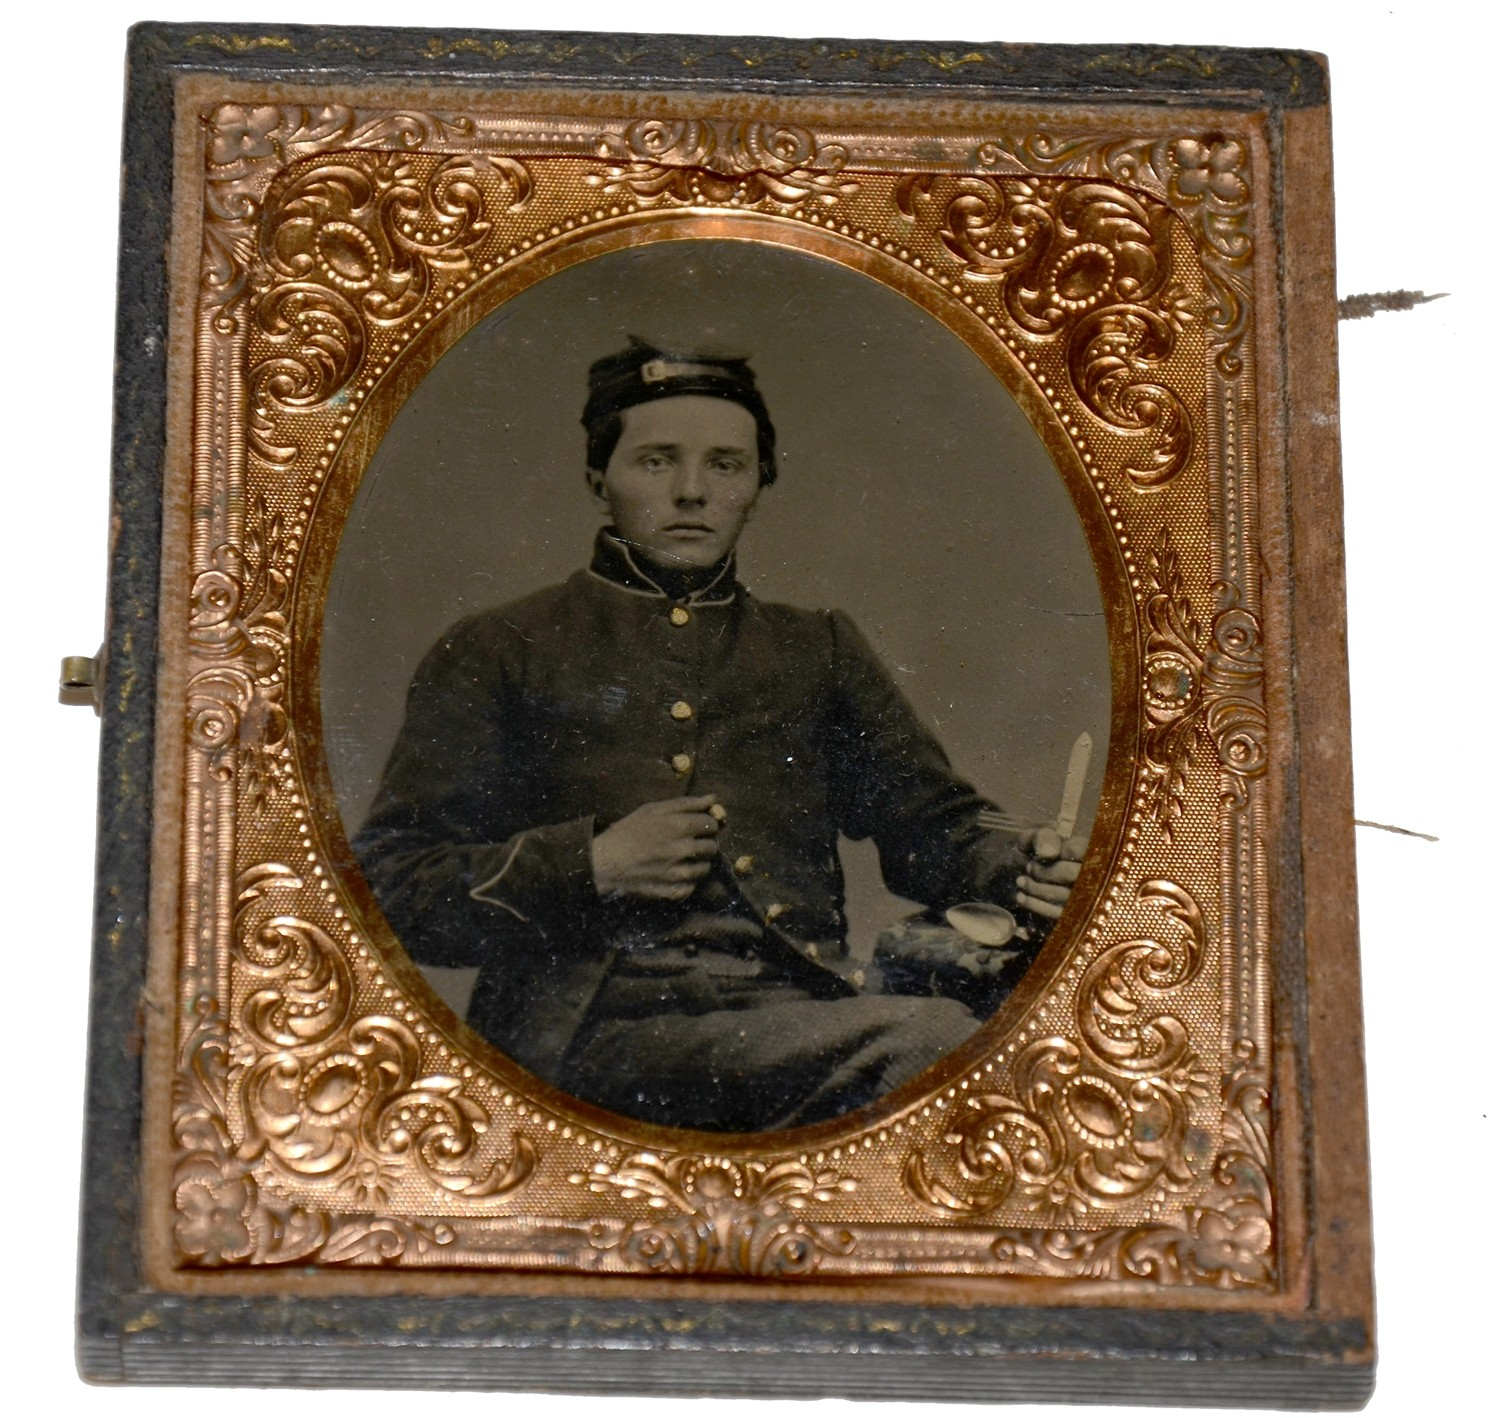 WONDERFUL SIXTH PLATE TINTYPE: INNOCENCE AND MESSGEAR